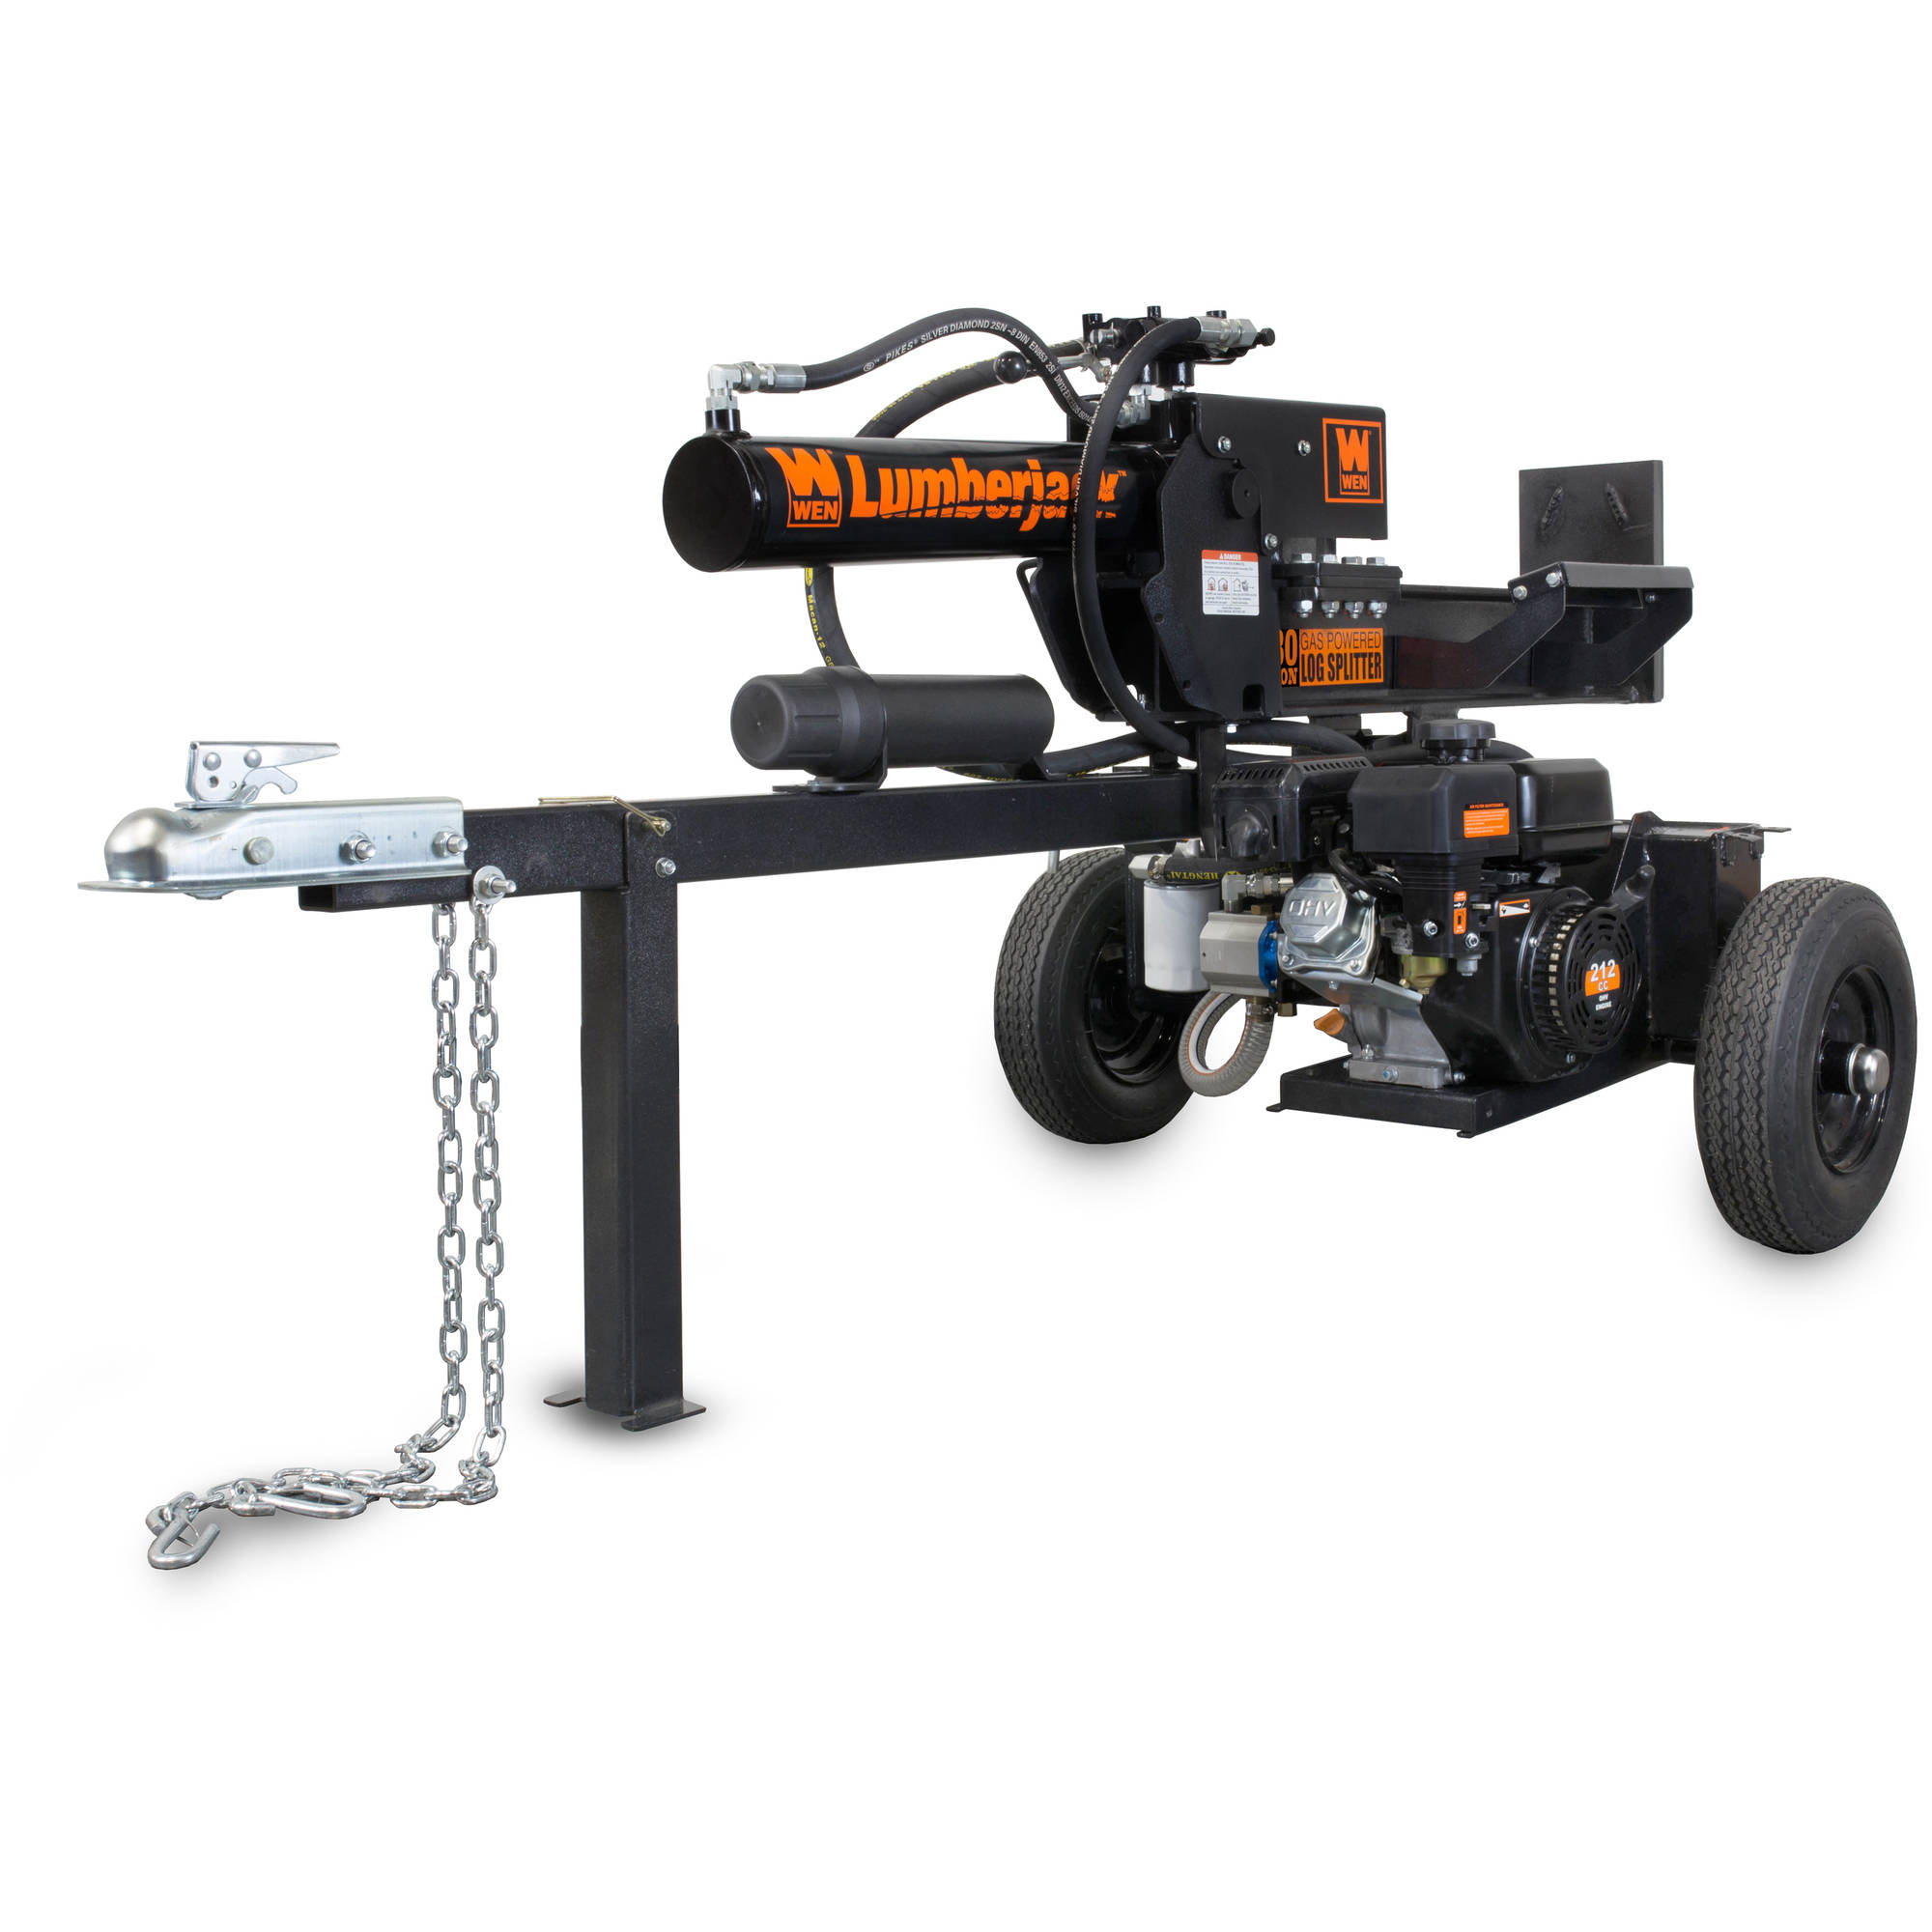 WEN Lumberjack 30-Ton Gas-Powered Log Splitter by WEN